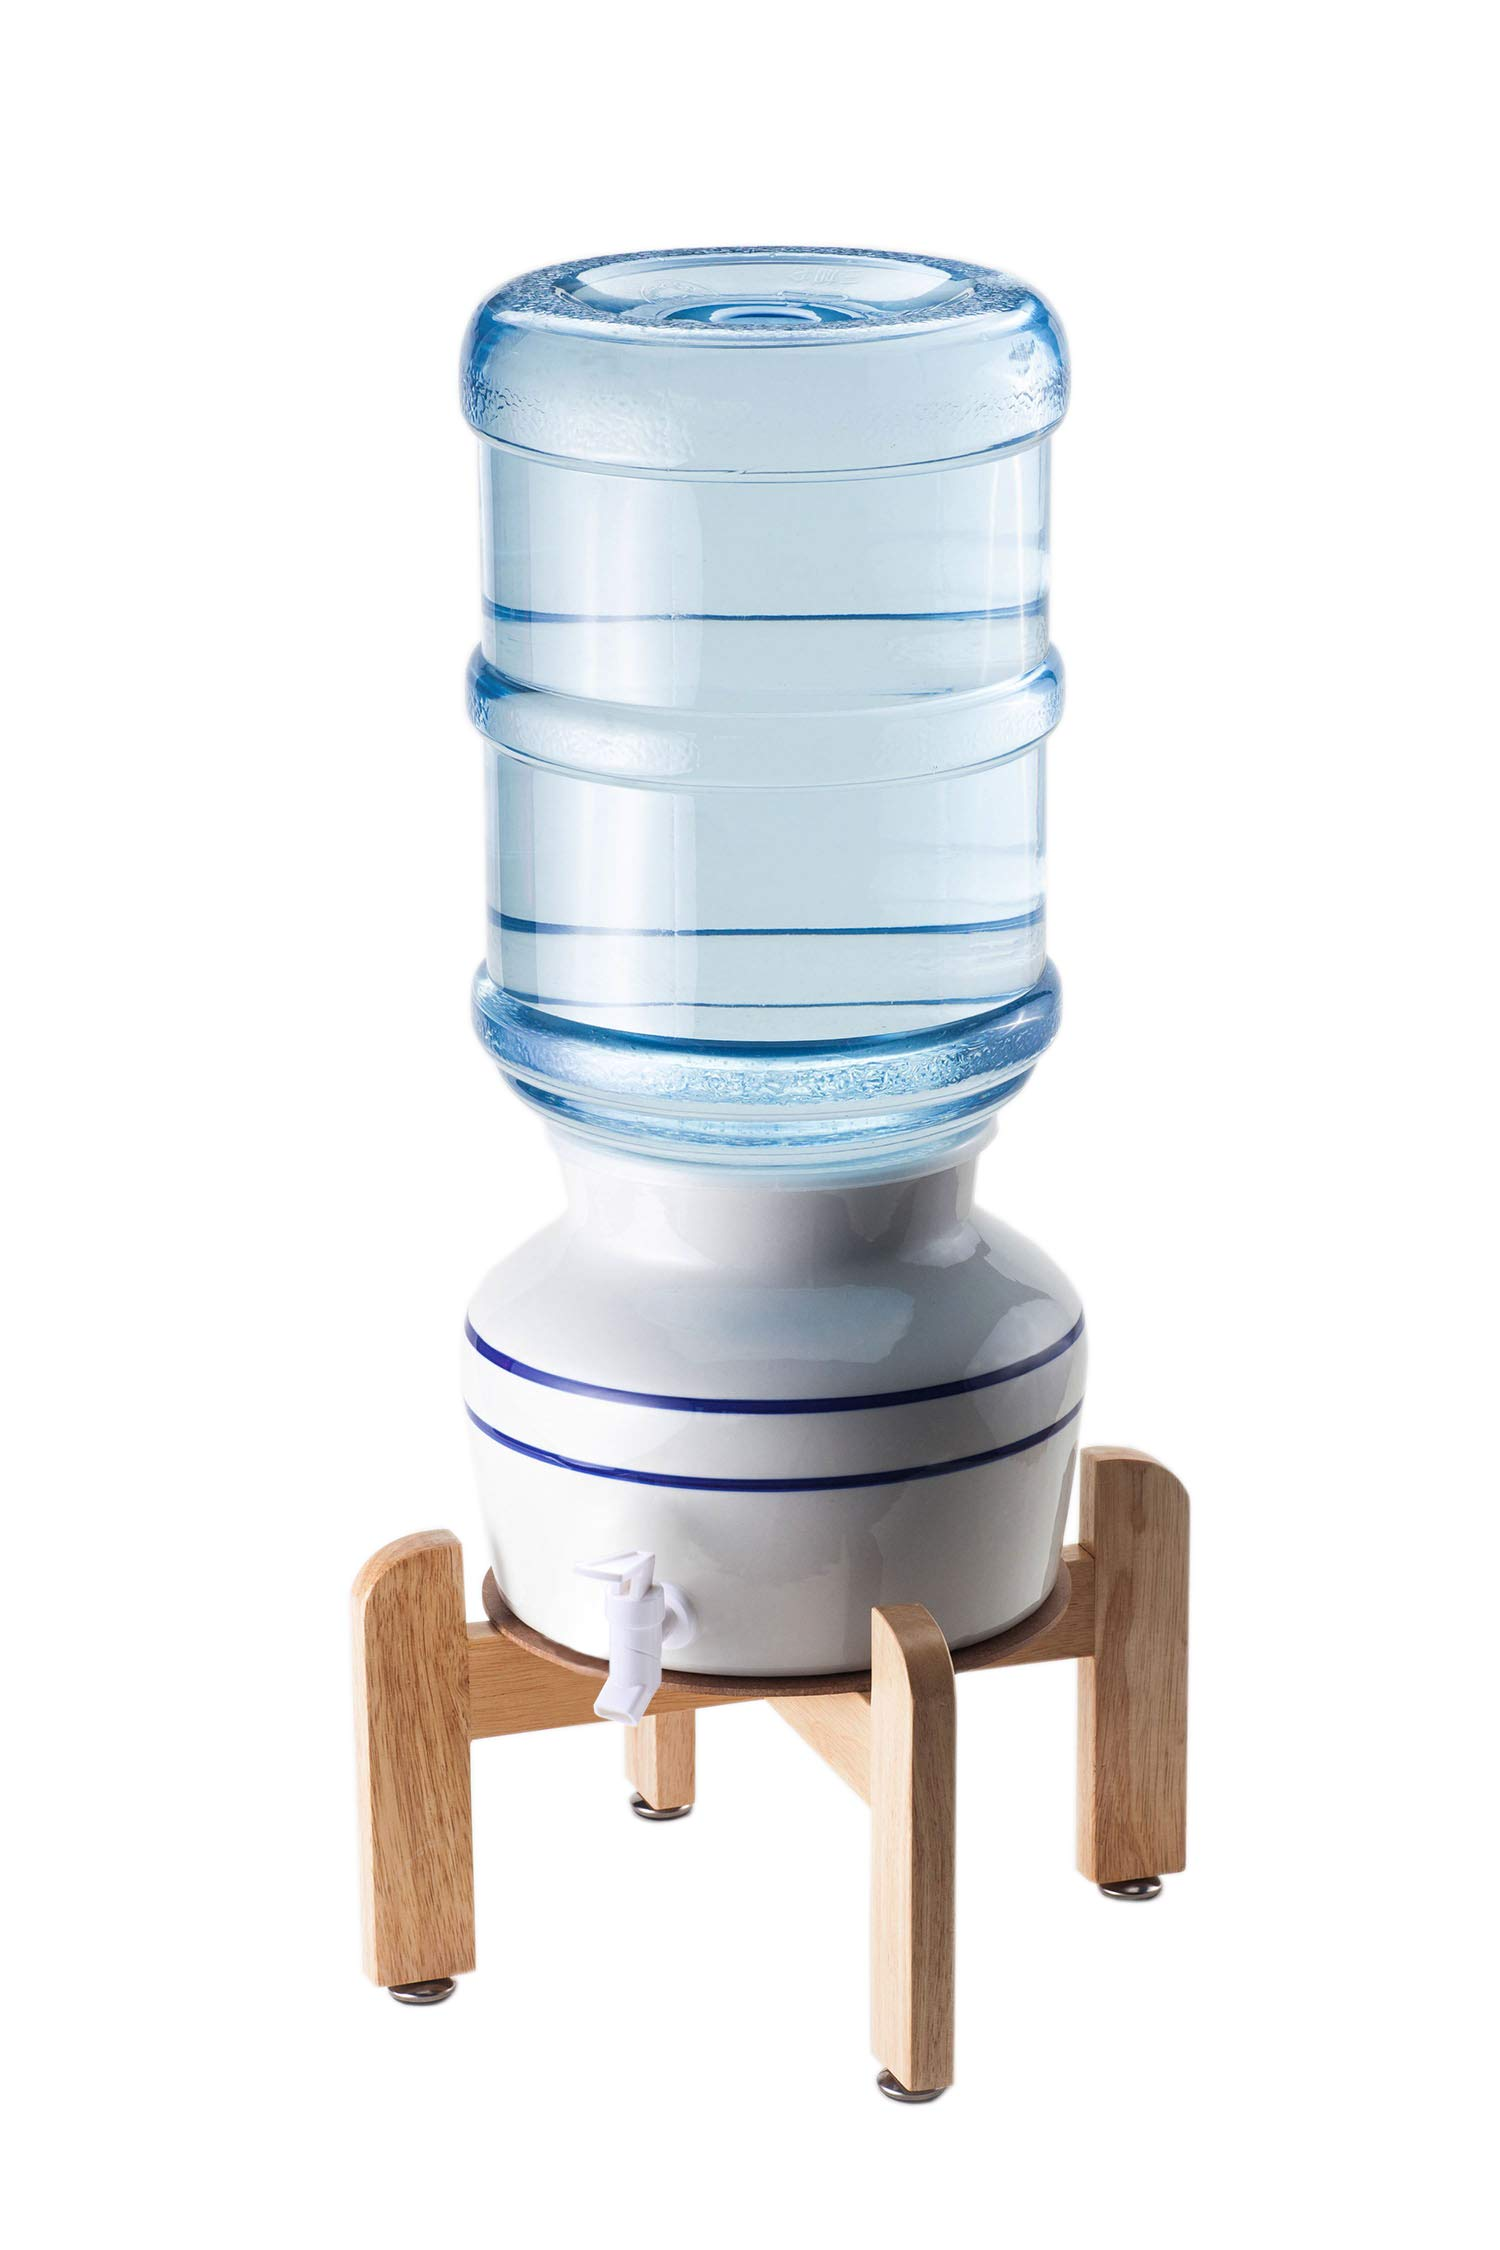 Sighompro Countertop Ceramic Water Dispenser with Faucet and Gasket, Mostly Used for 3 Gallon and 5 Gallon Water Bottles